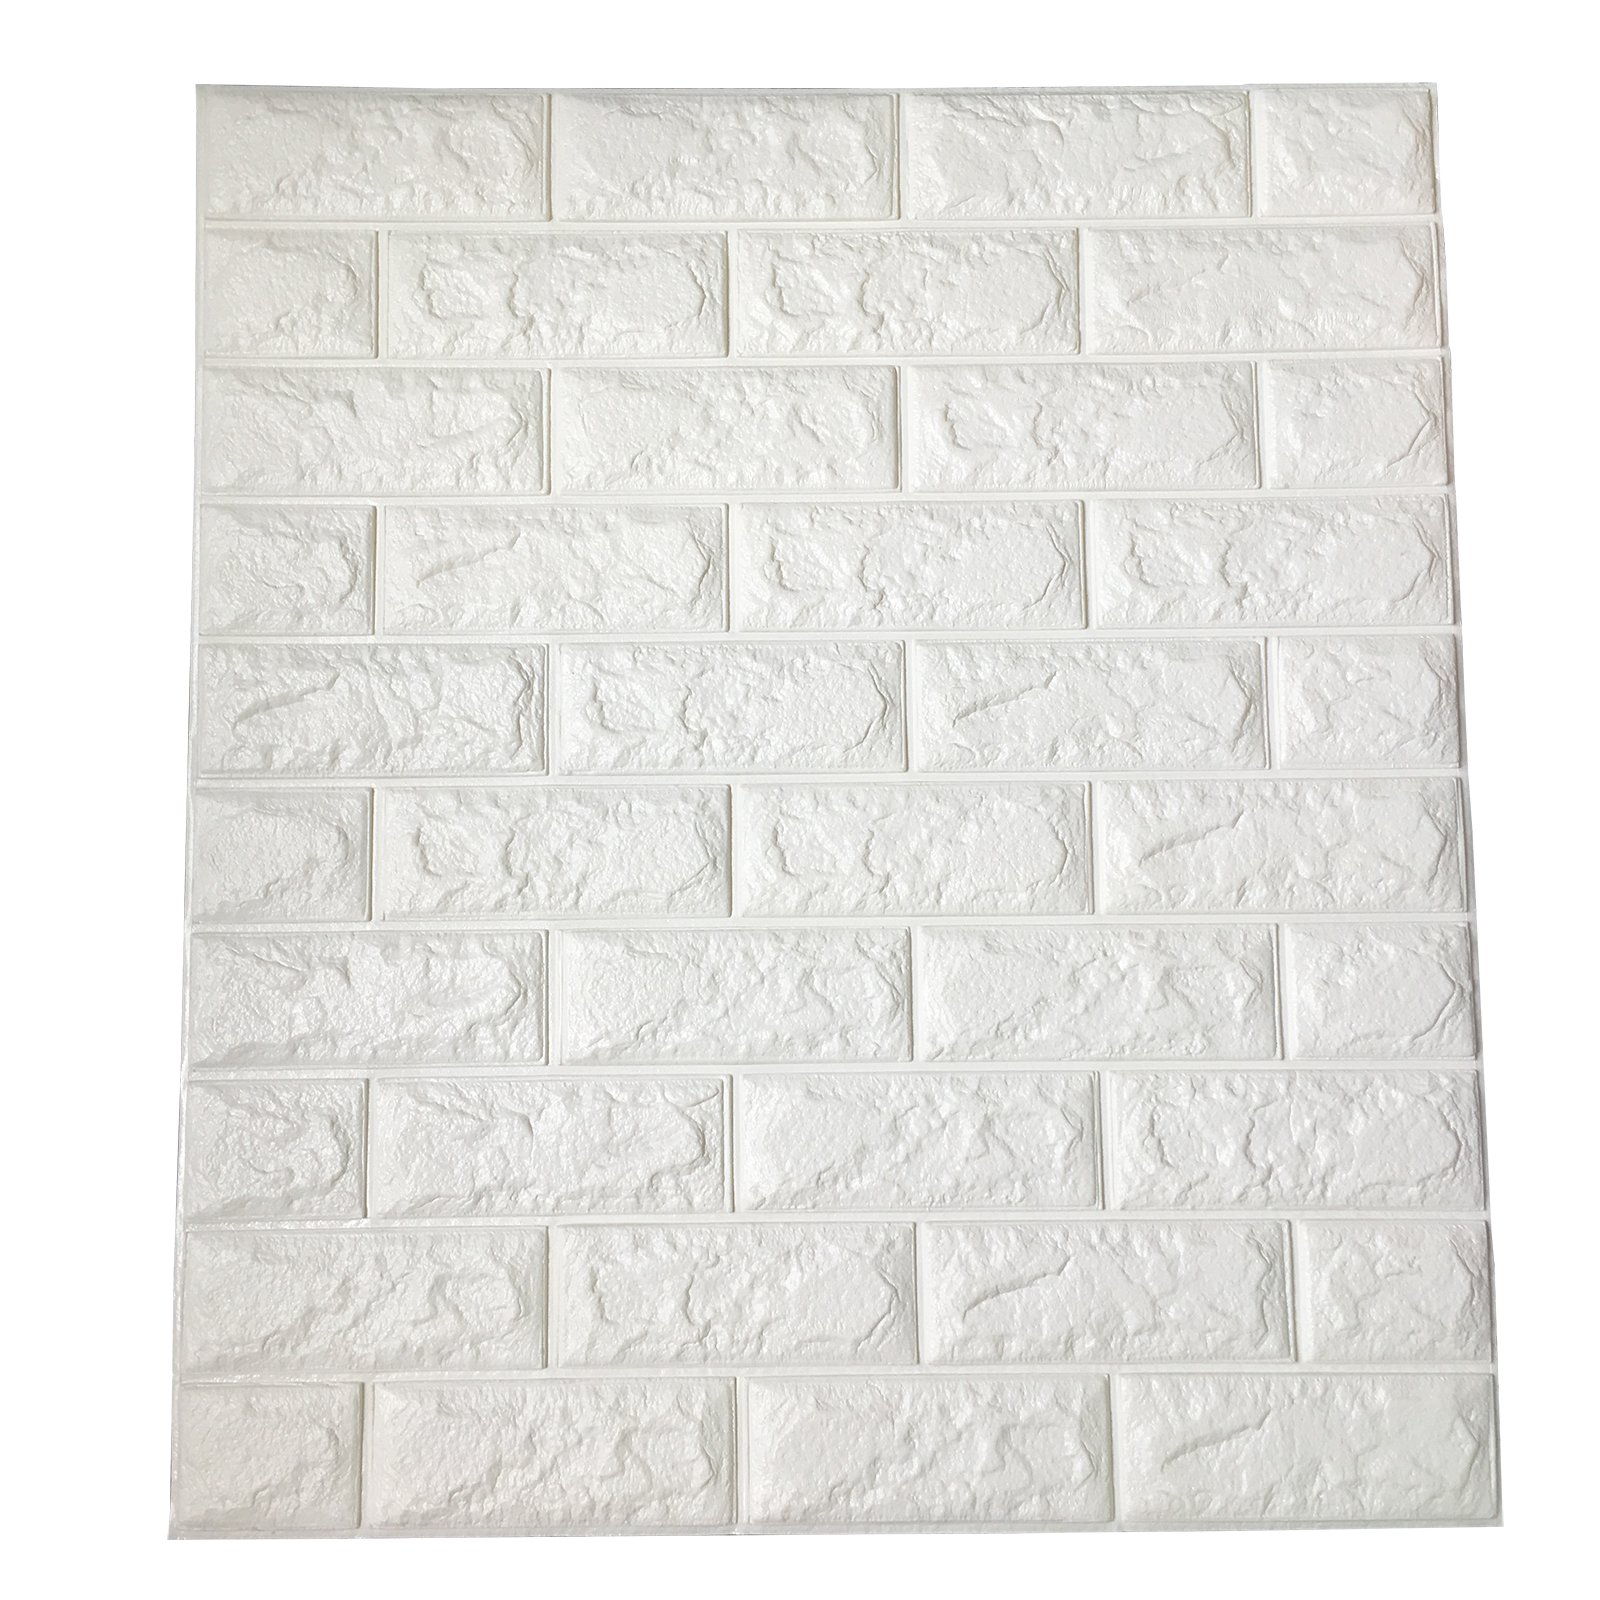 64 Sq.Ft Peel and Stick 3D Wall Panels for Interior Wall Decor, White Brick Wallpaper, Pack of 11